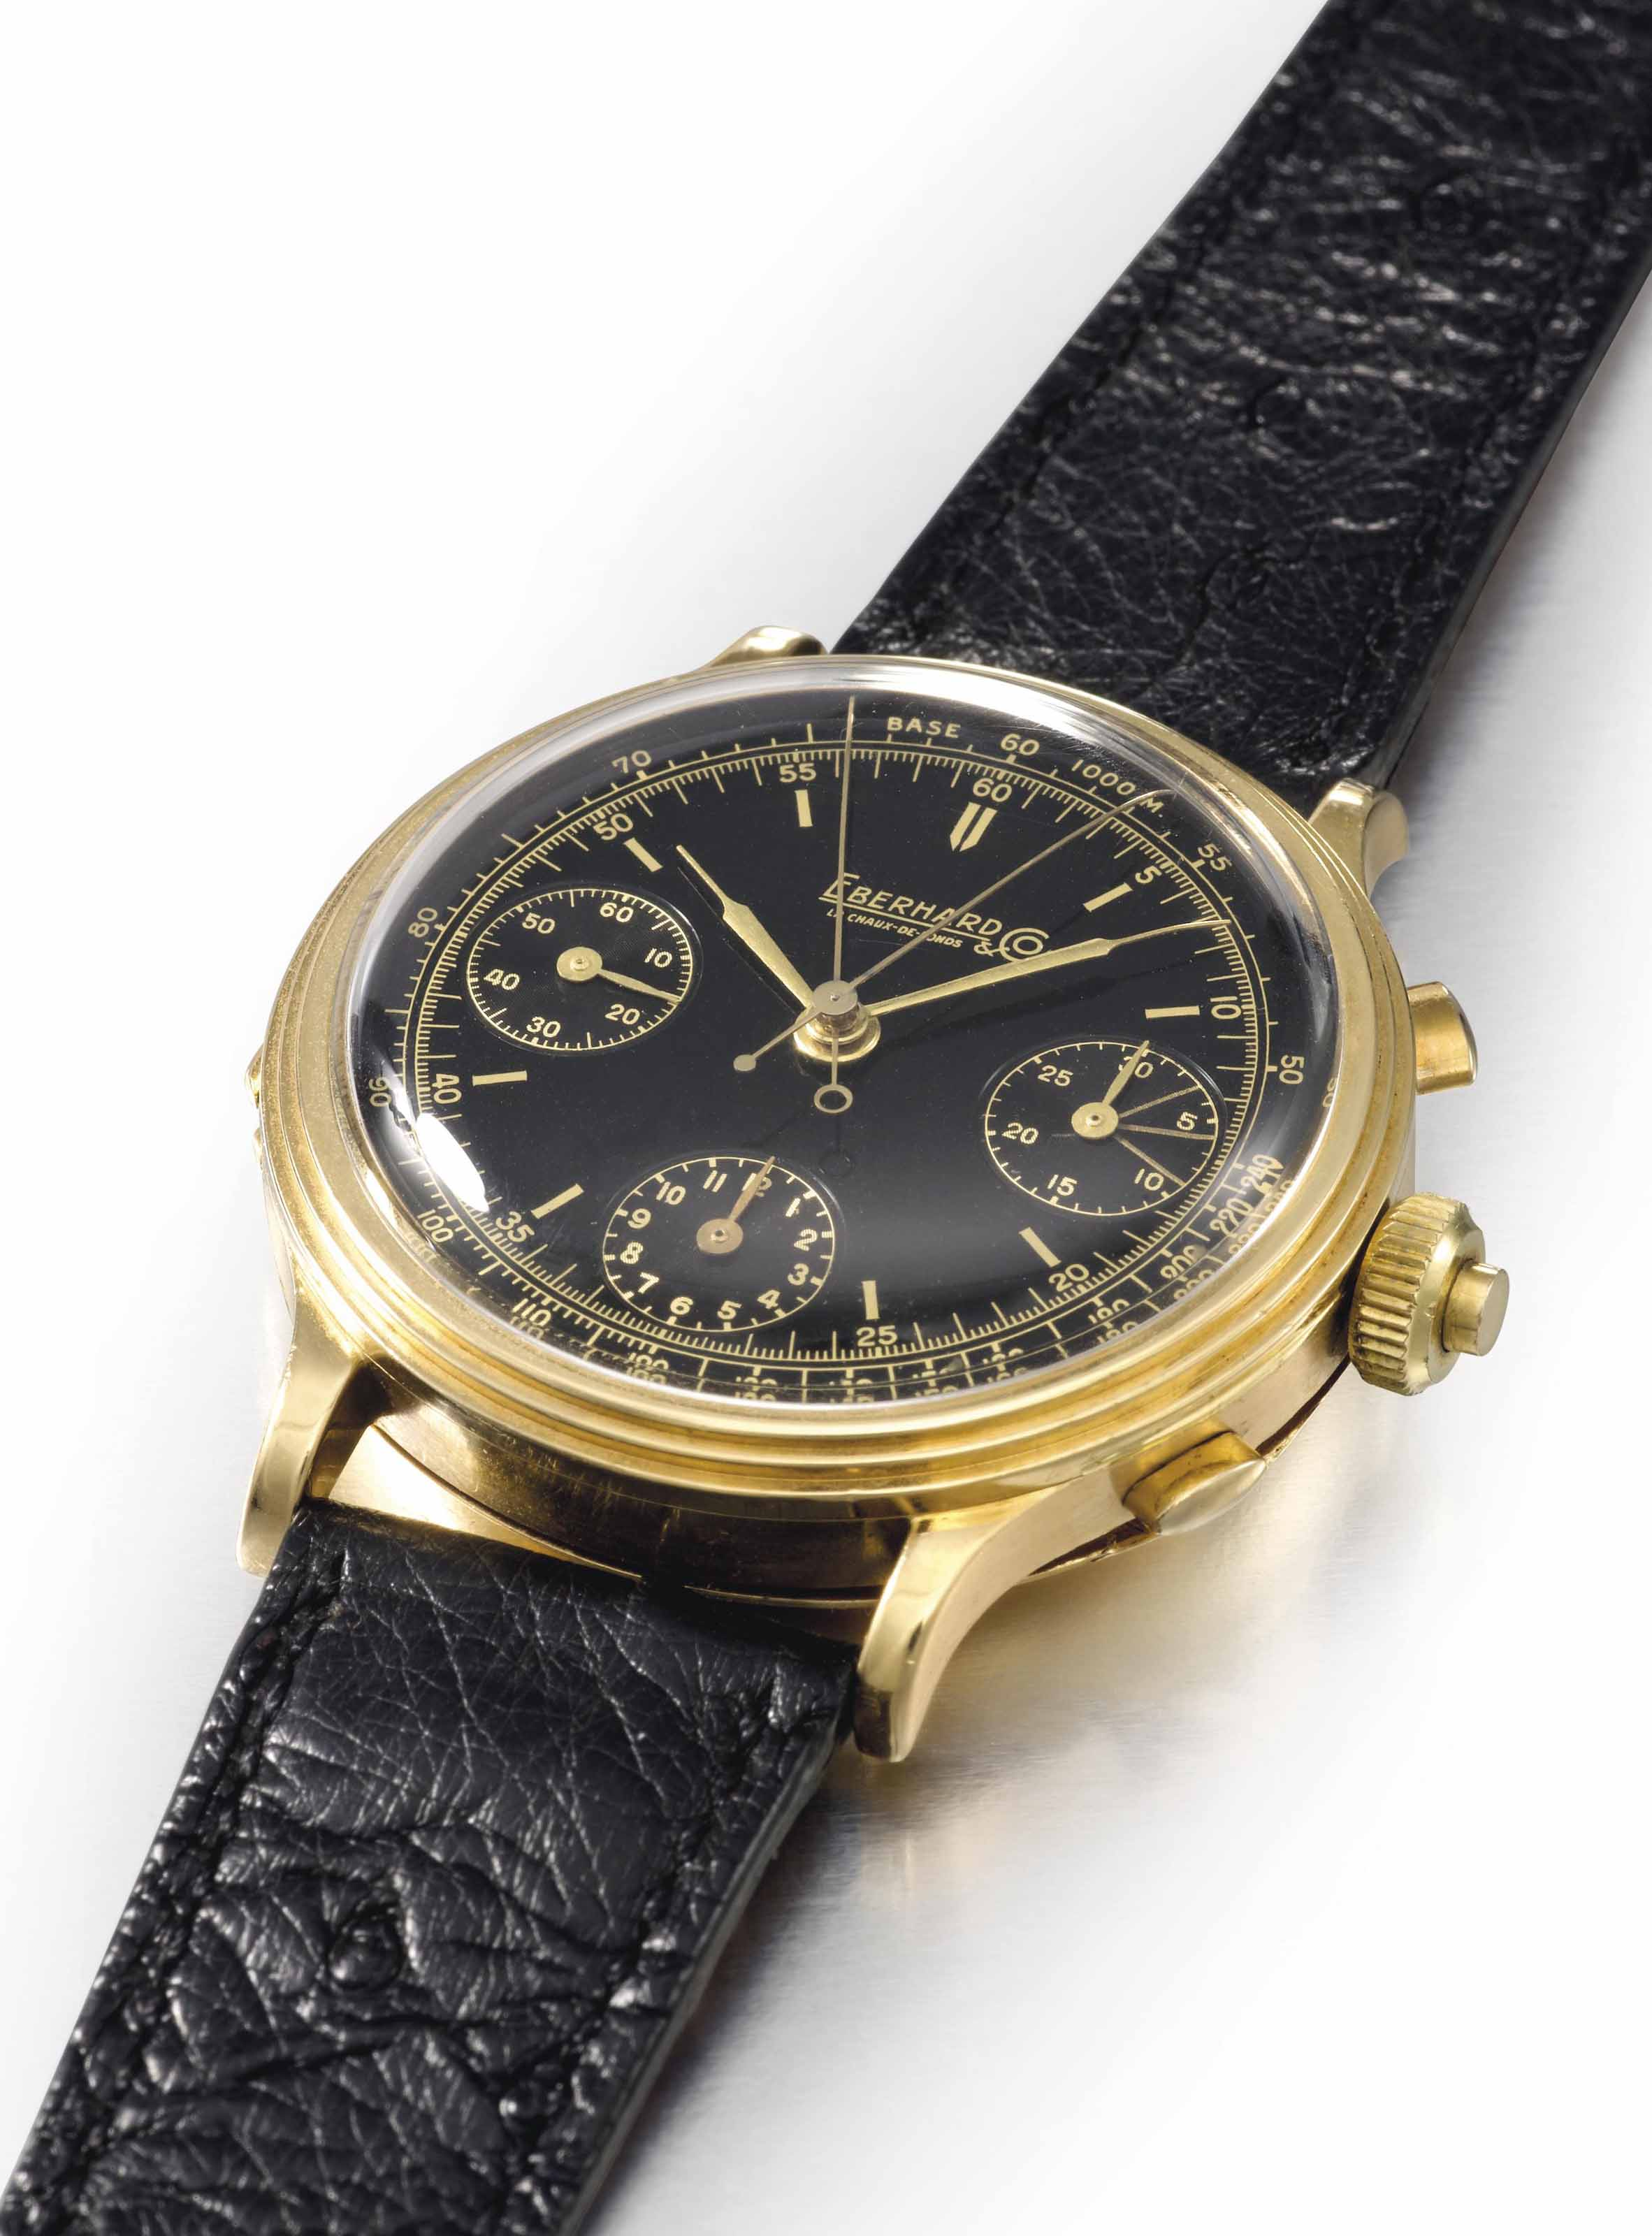 Eberhard. An extremely fine and unusual oversized 18K gold split seconds chronograph wristwatch with black dial